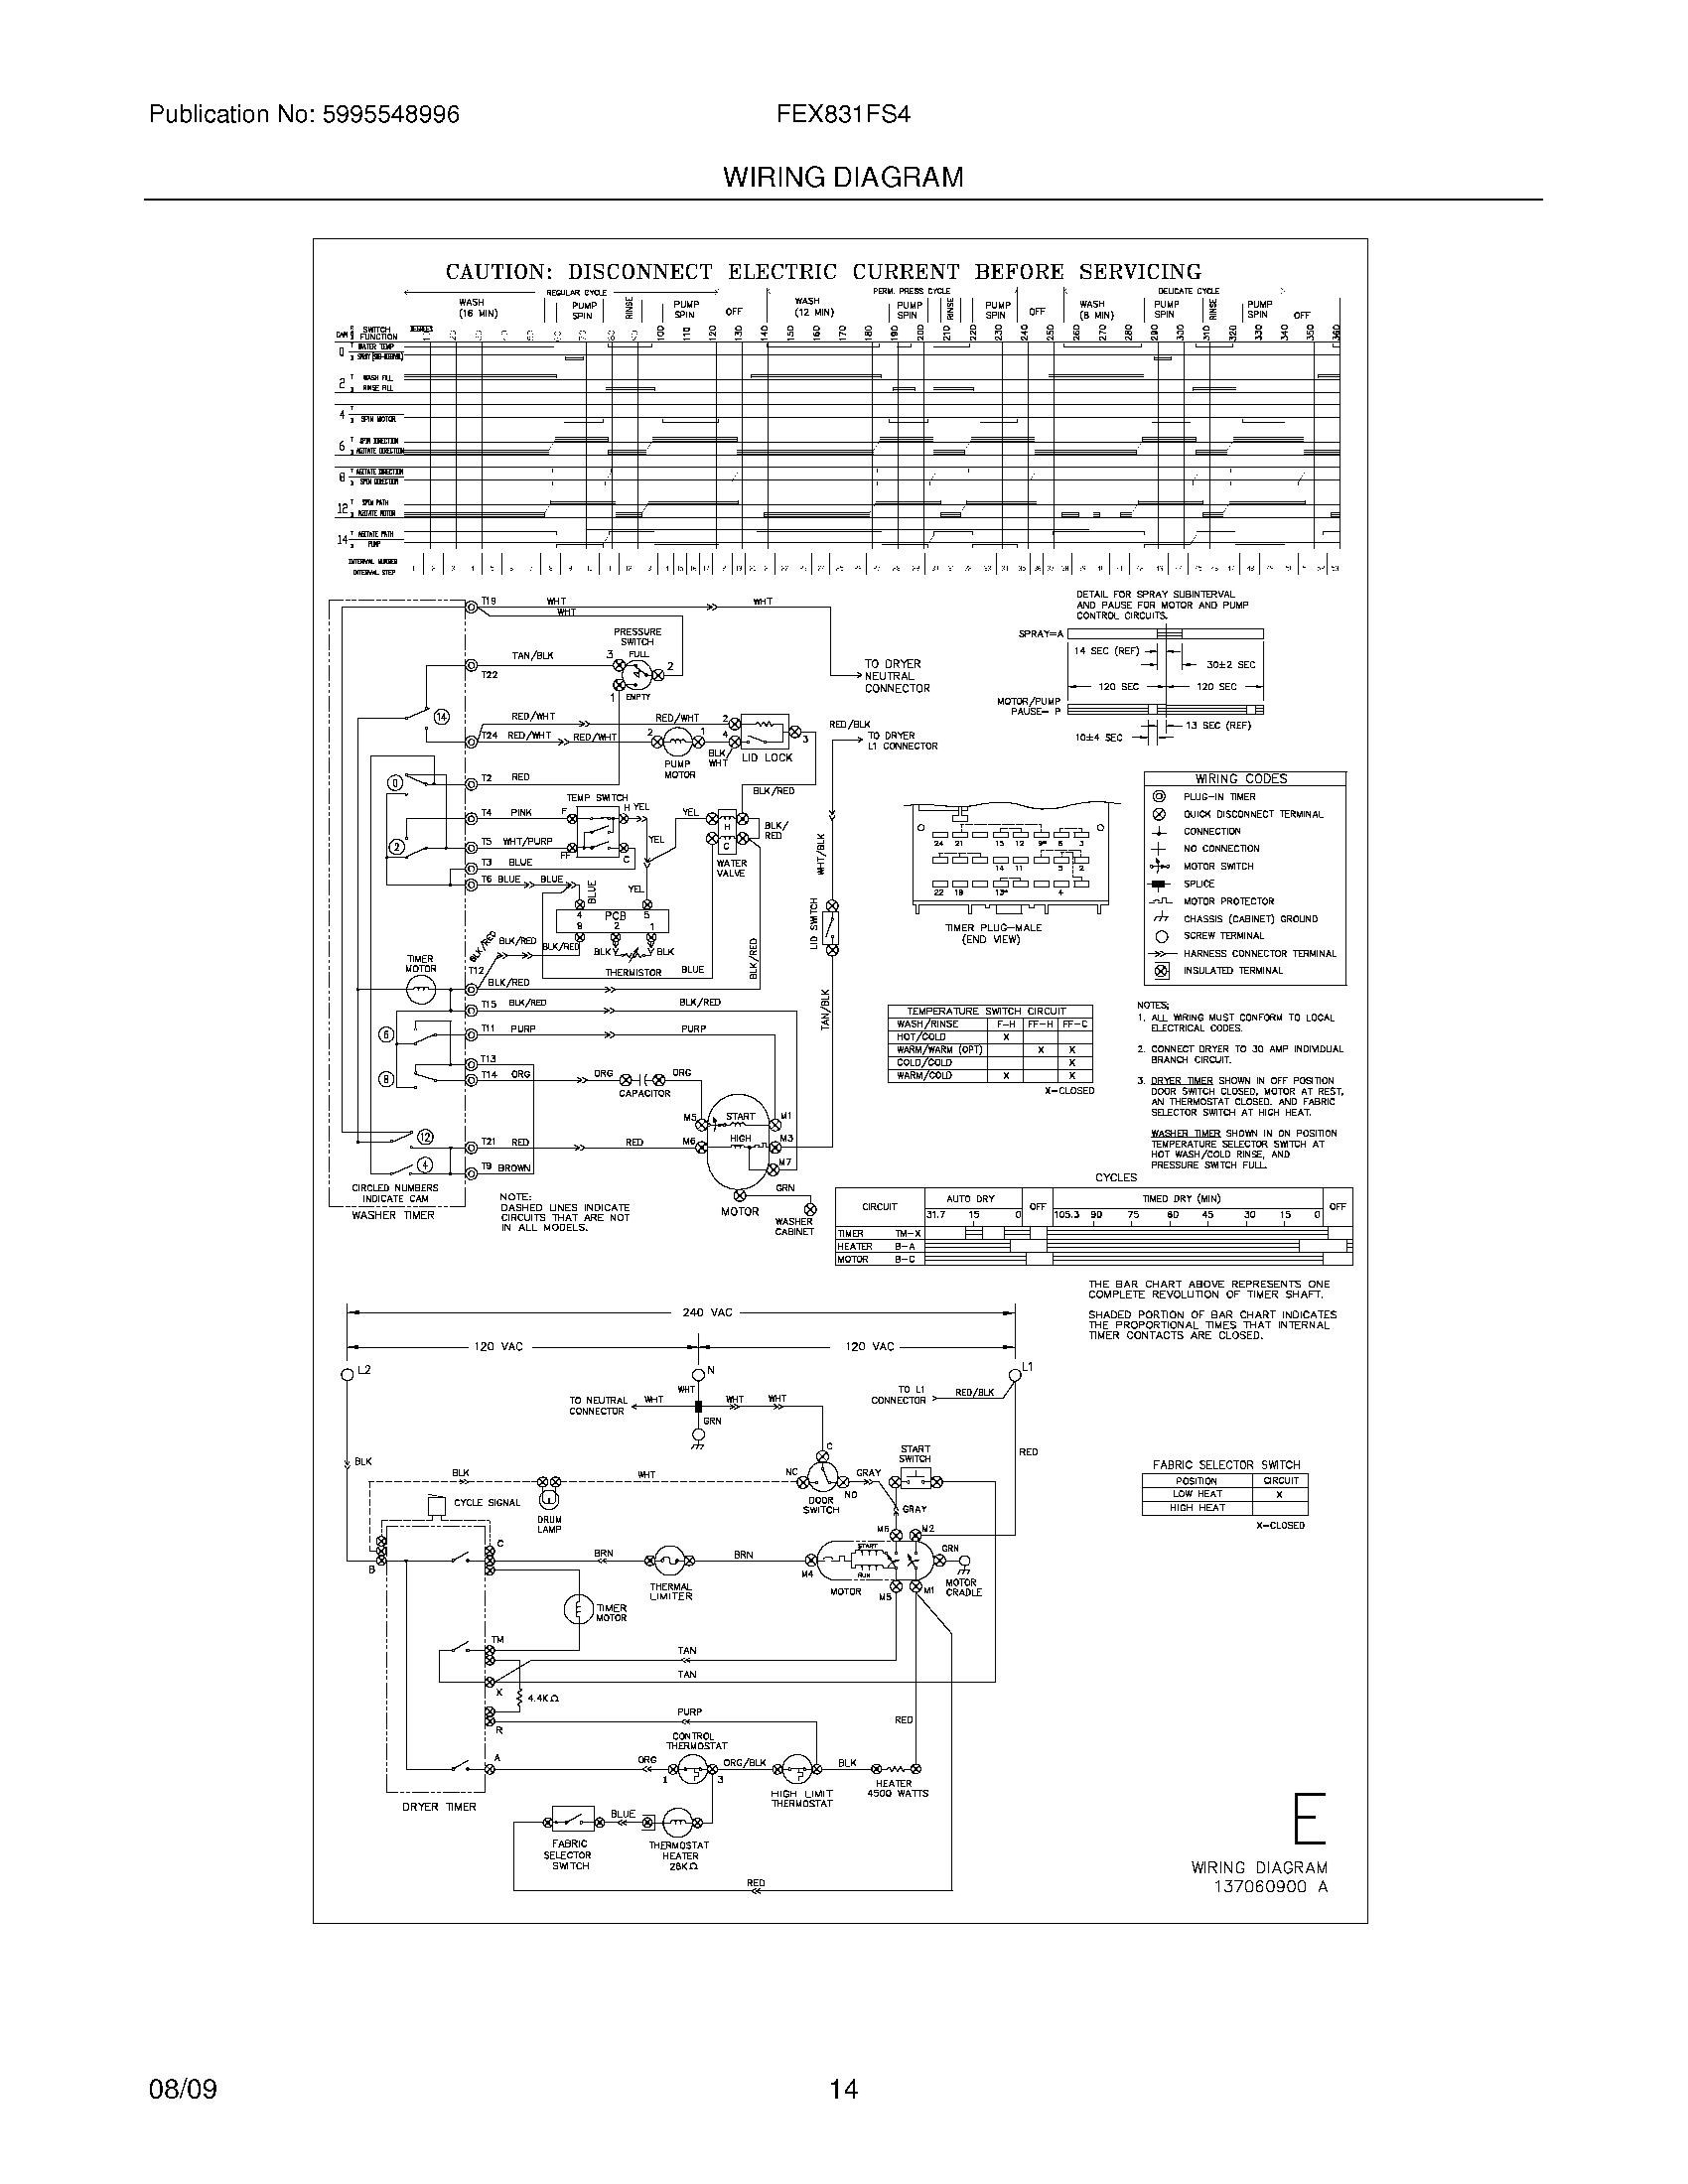 Fex831fs4 Wiring Diagram : 24 Wiring Diagram Images